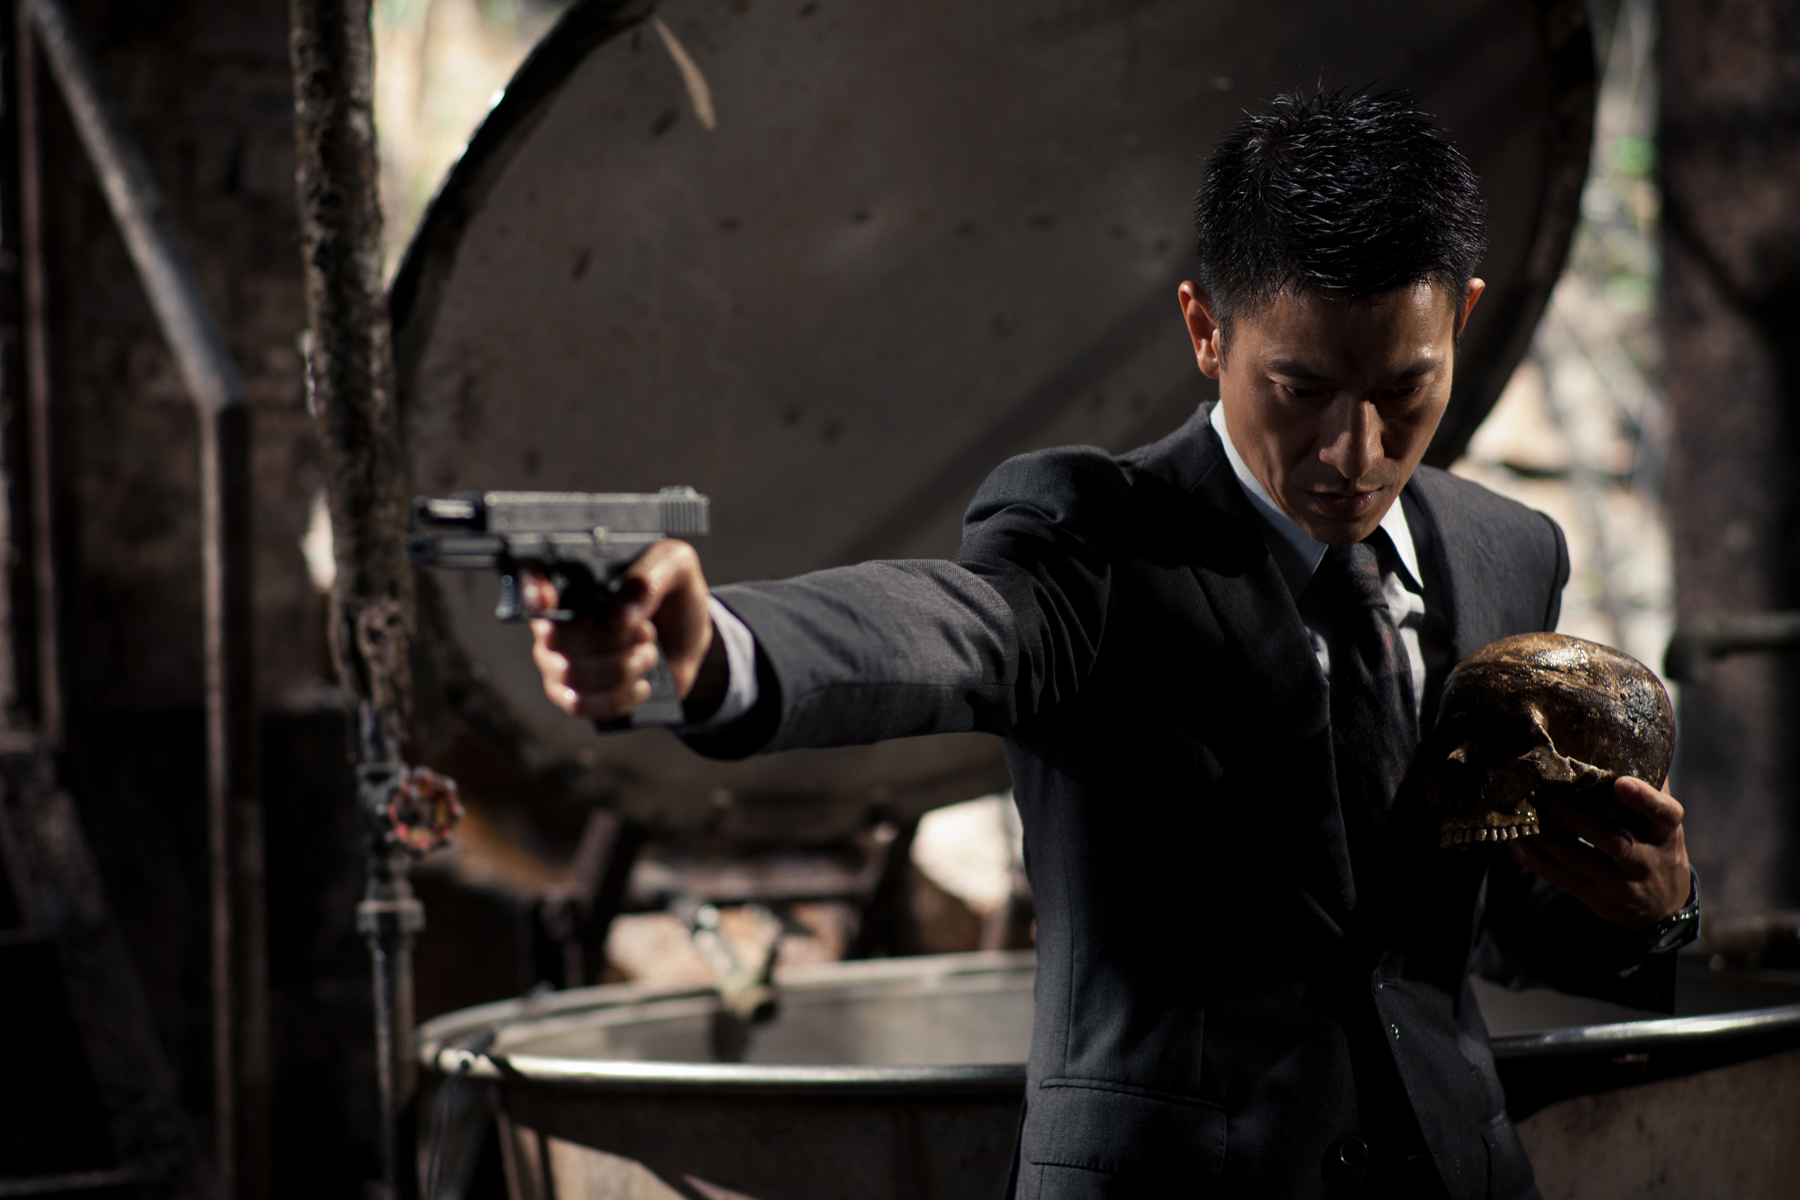 Andy Lau shoots without seeing, Blind Detective, 2012